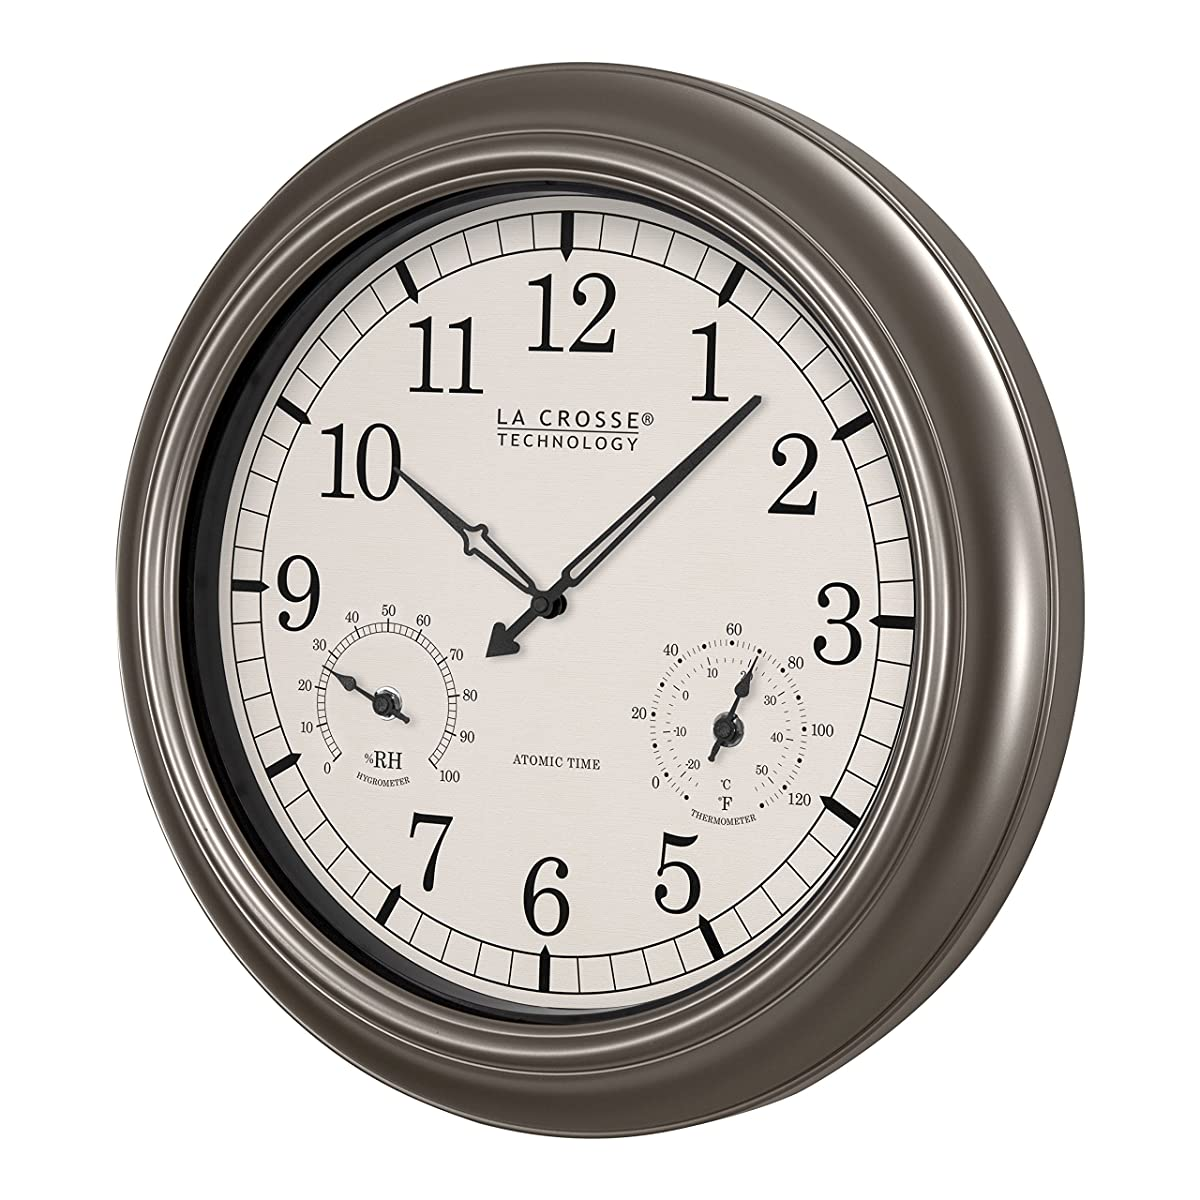 La Crosse Technology WT-3181PL-INT 18 inch Atomic Outdoor Clock with Temperature & Humidity